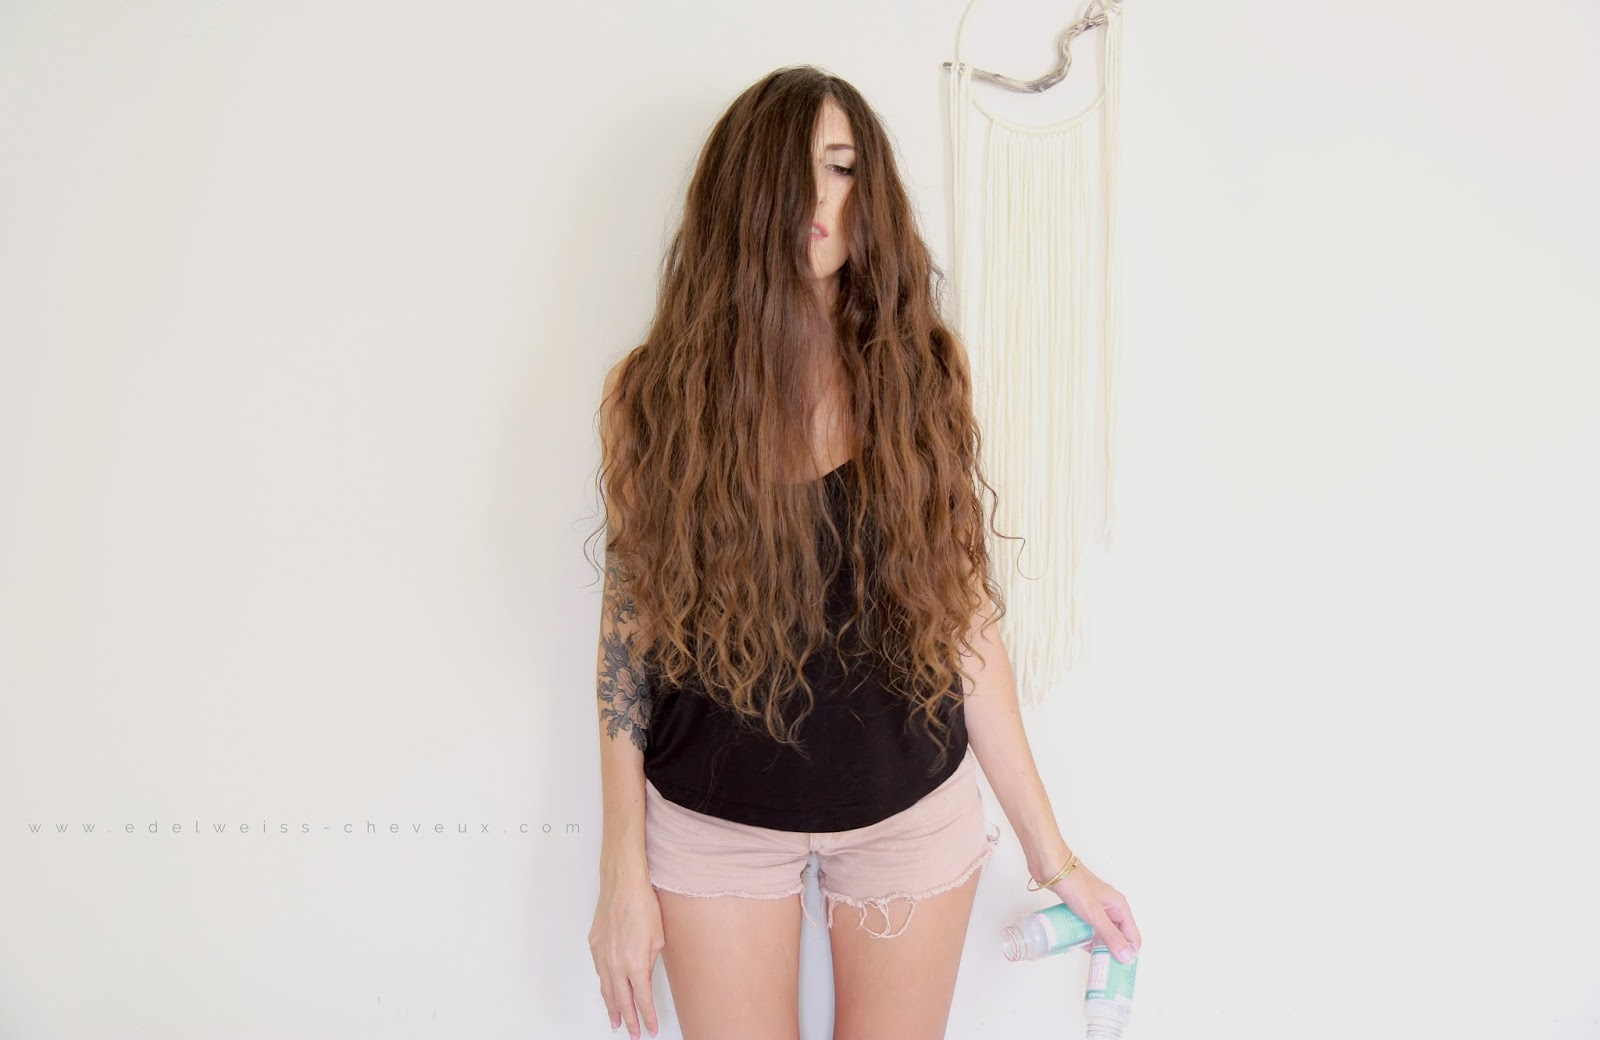 bonbons hairburst avis blog cheveux longs au naturel